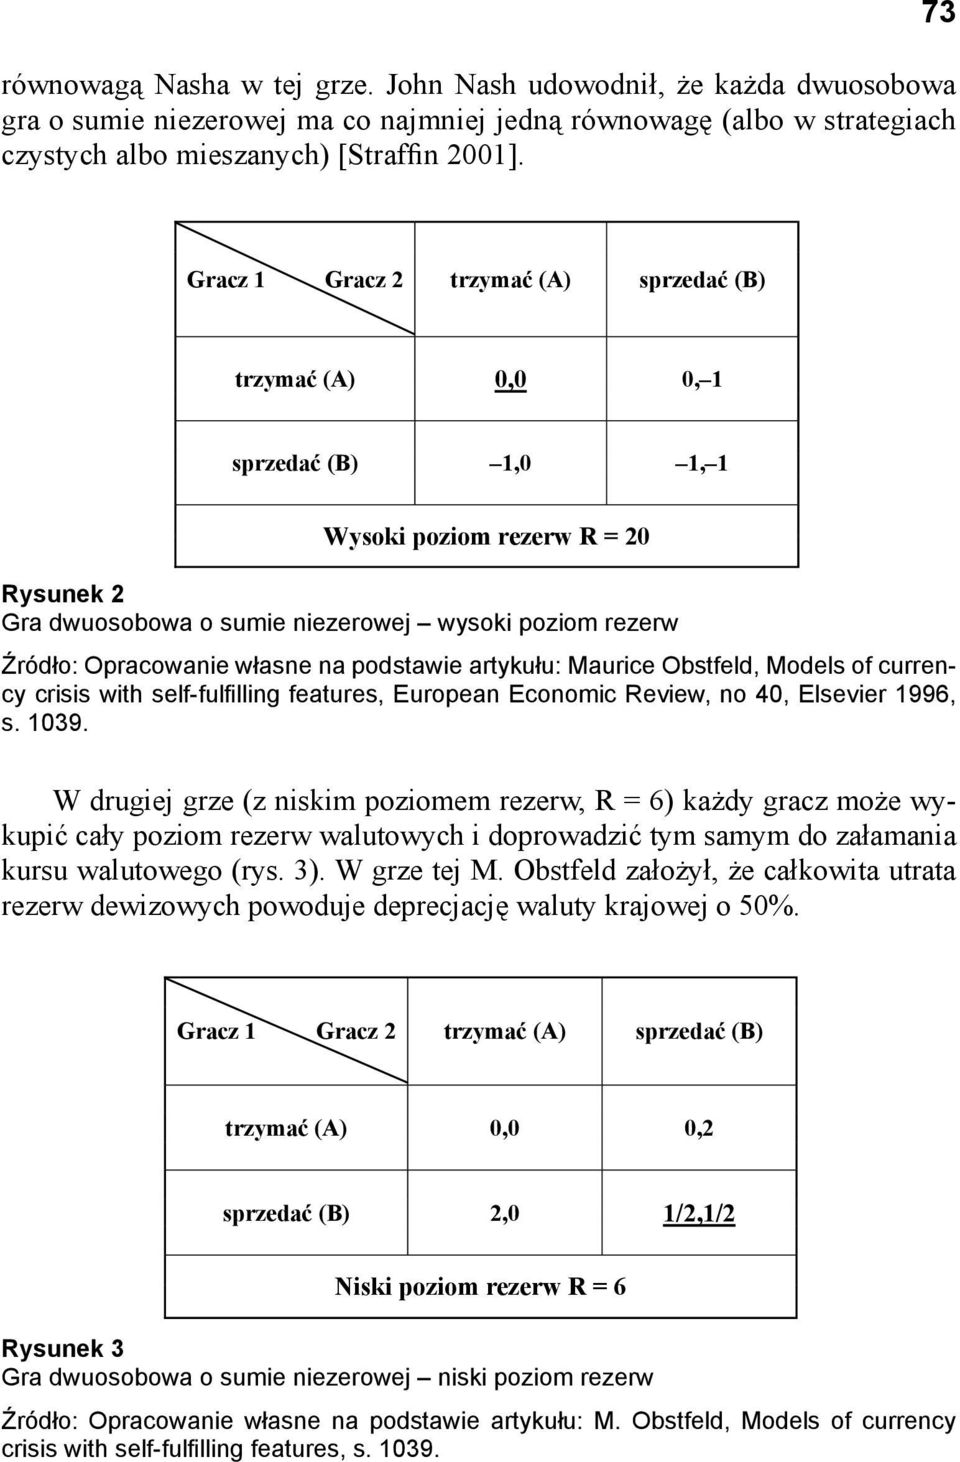 własne na podstawie artykułu: Maurice Obstfeld, Models of currency crisis with self-fulfi lling features, European Economic Review, no 40, Elsevier 1996, s. 1039.